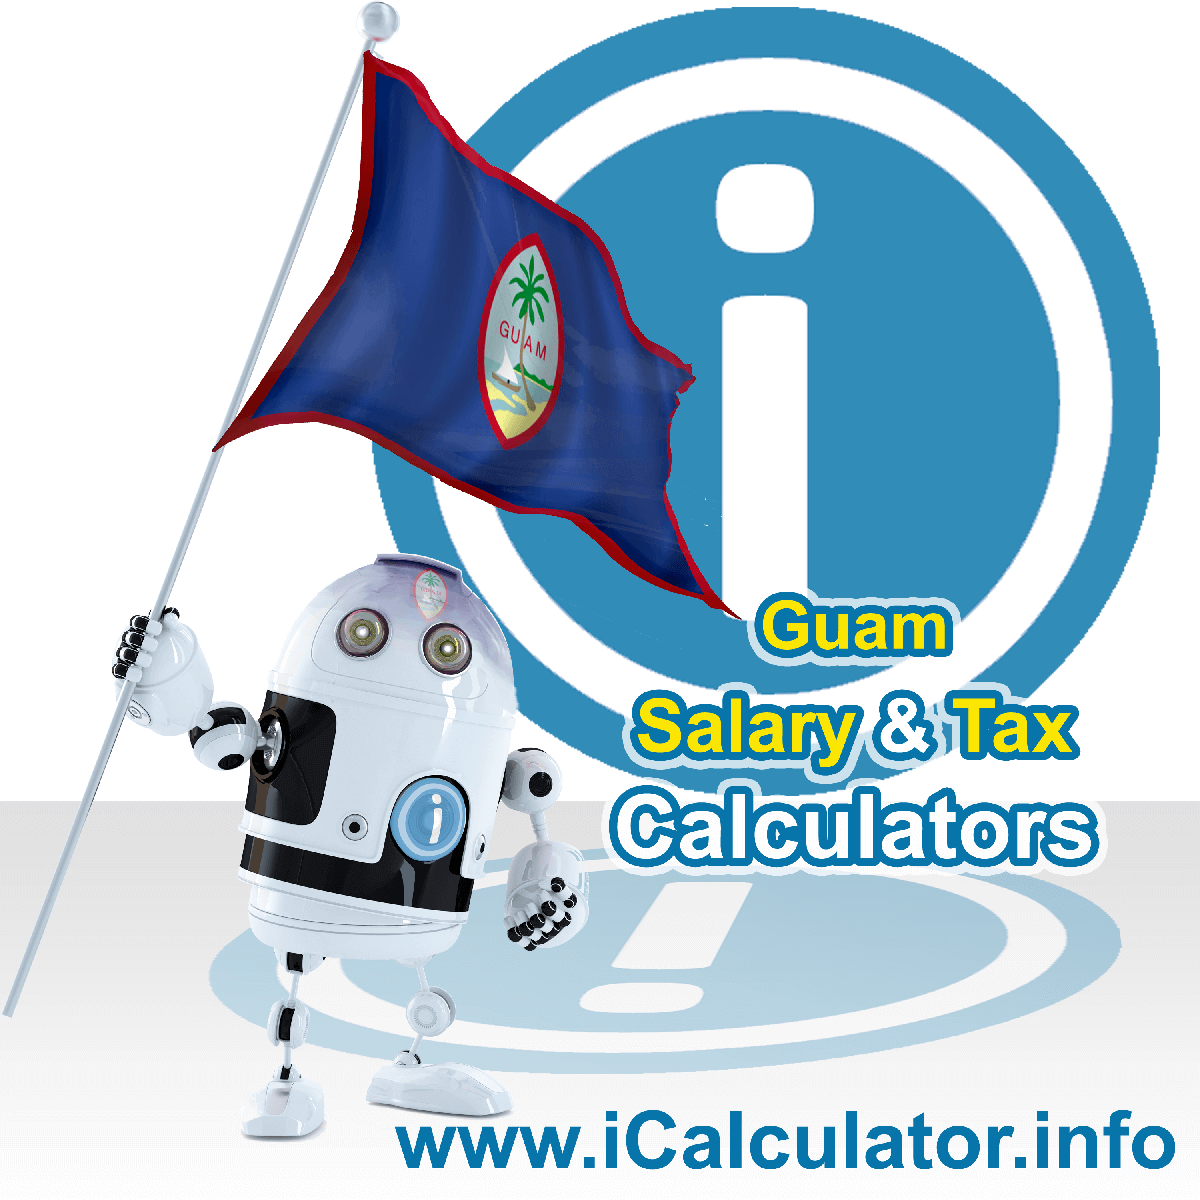 Guam Tax Calculator. This image shows the Guam flag and information relating to the tax formula for the Guam Salary Calculator